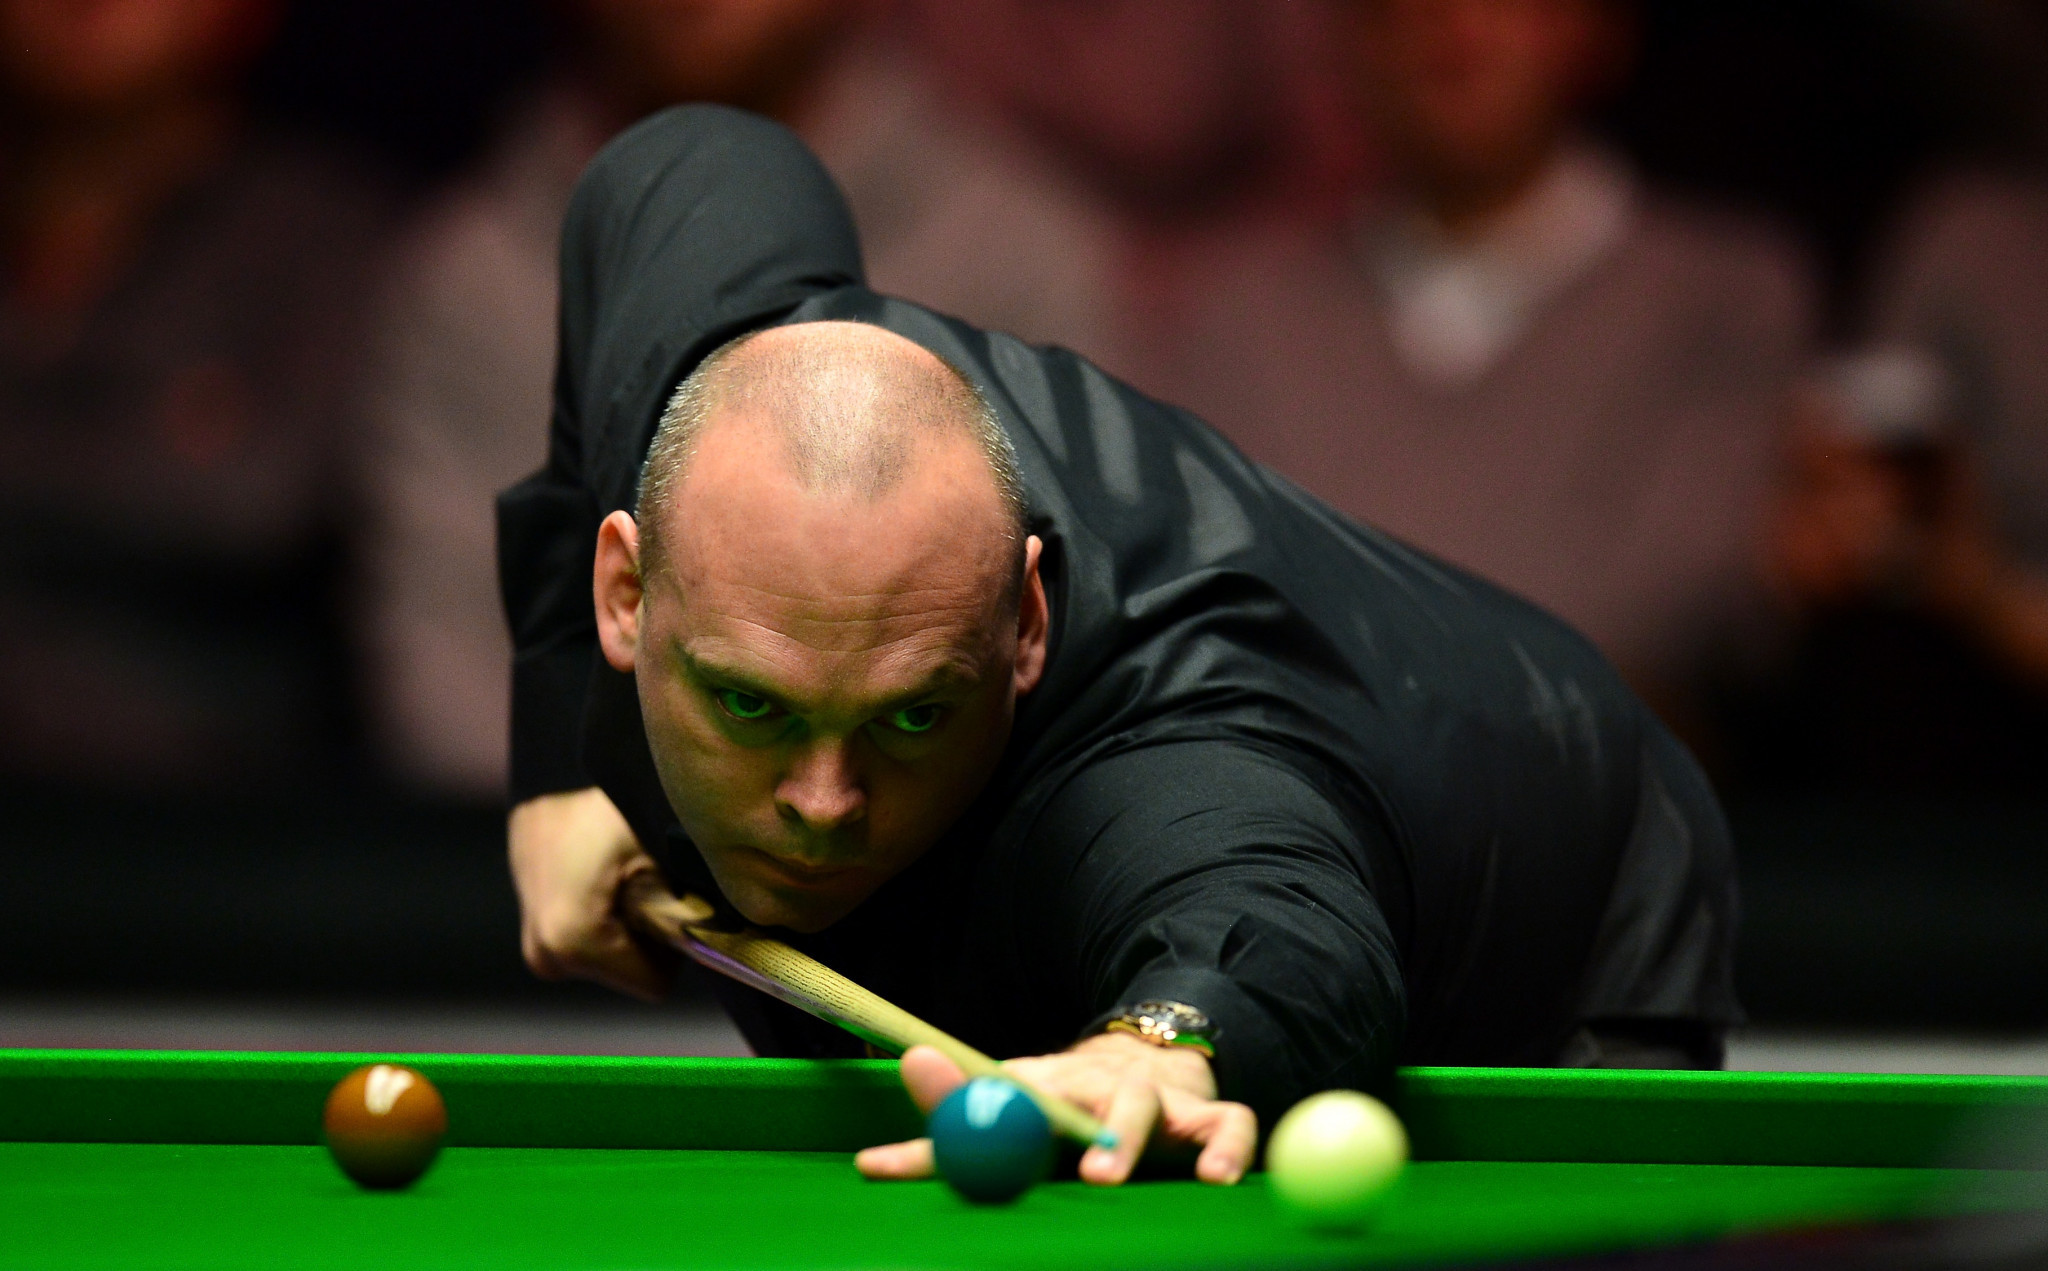 Former world snooker champion Bingham given six-month ban for gambling